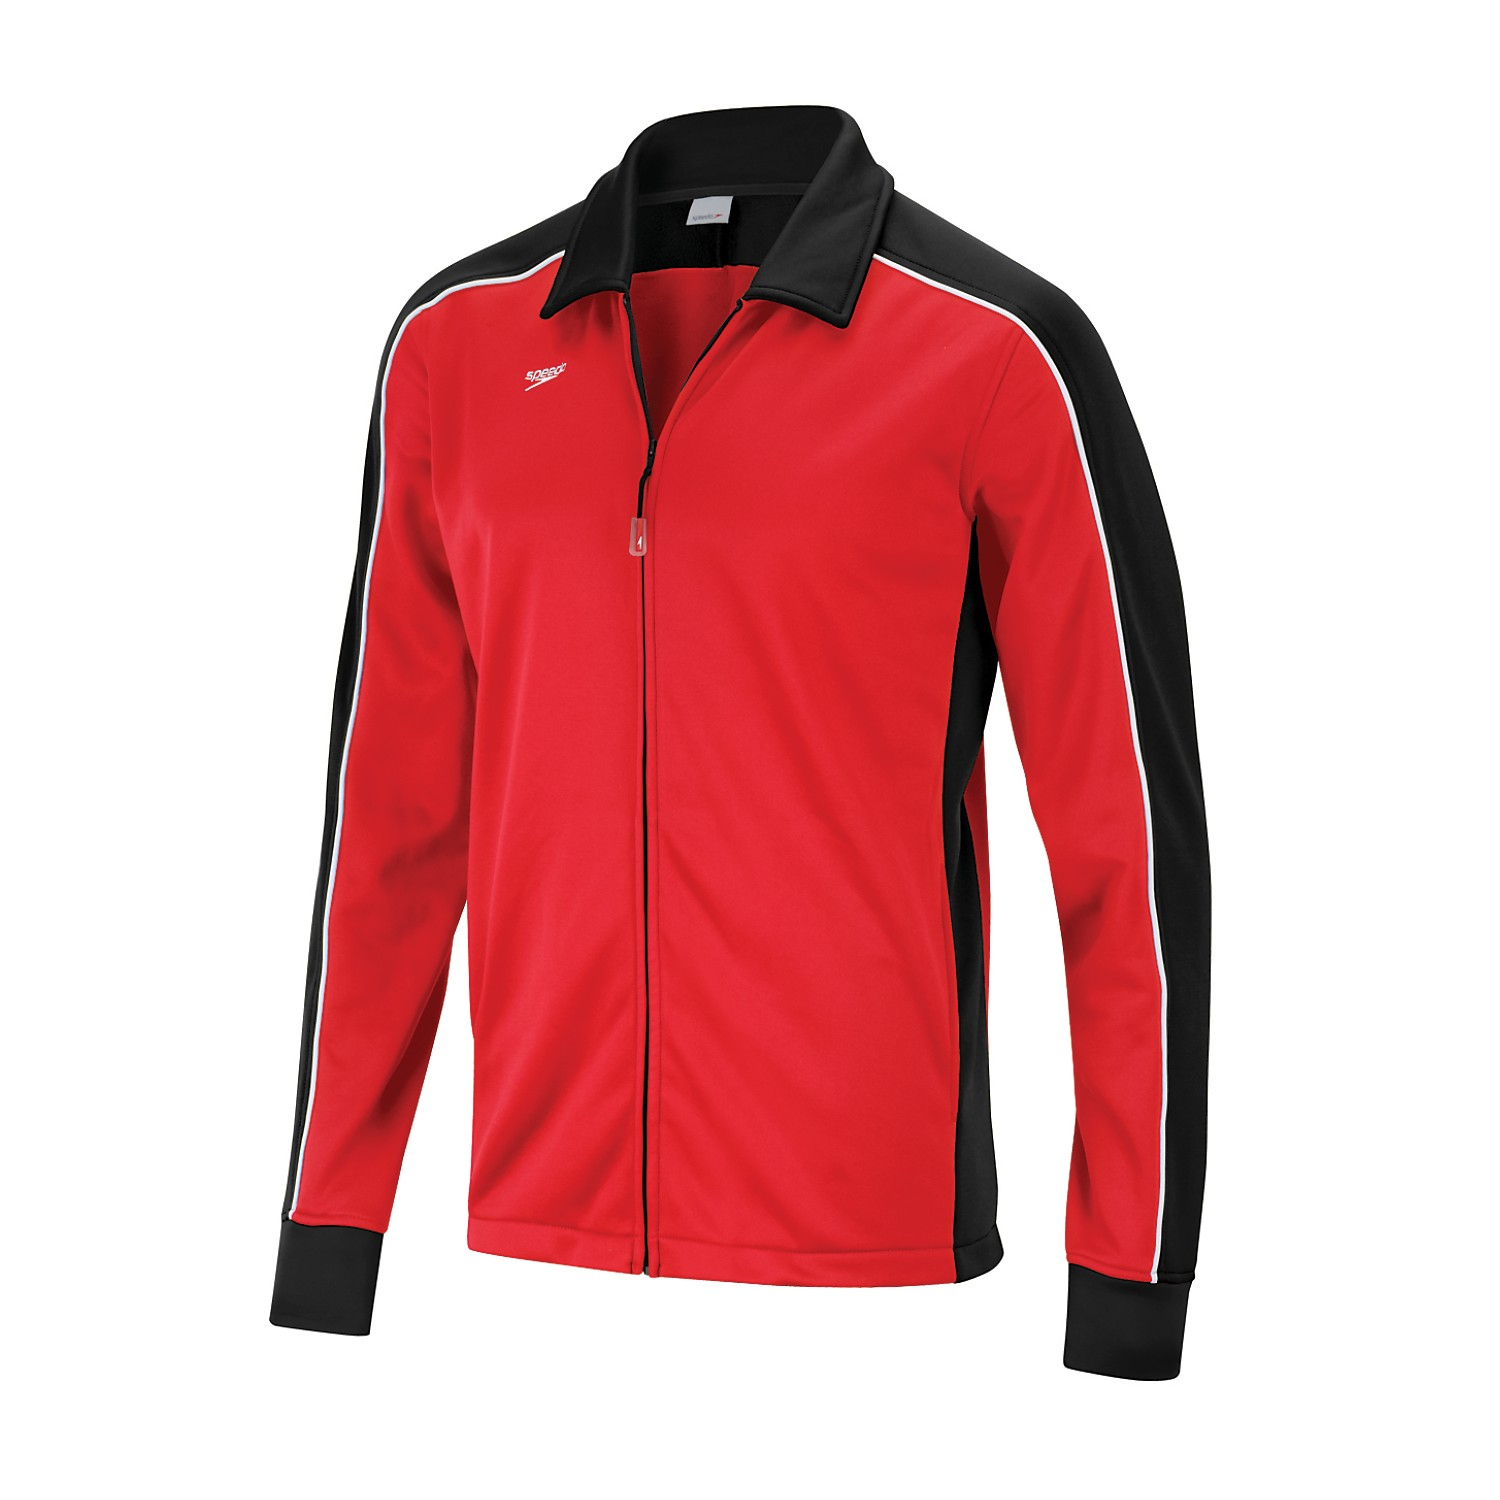 West Speedo Women's Streamline Jacket